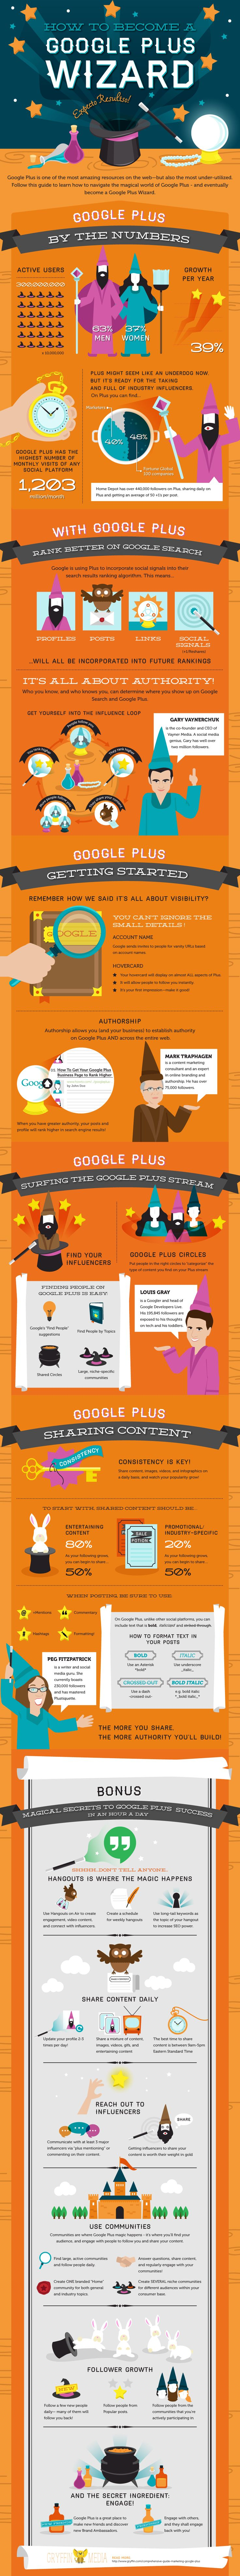 how to use #GooglePlus for #marketing - #infographic #socialmedia